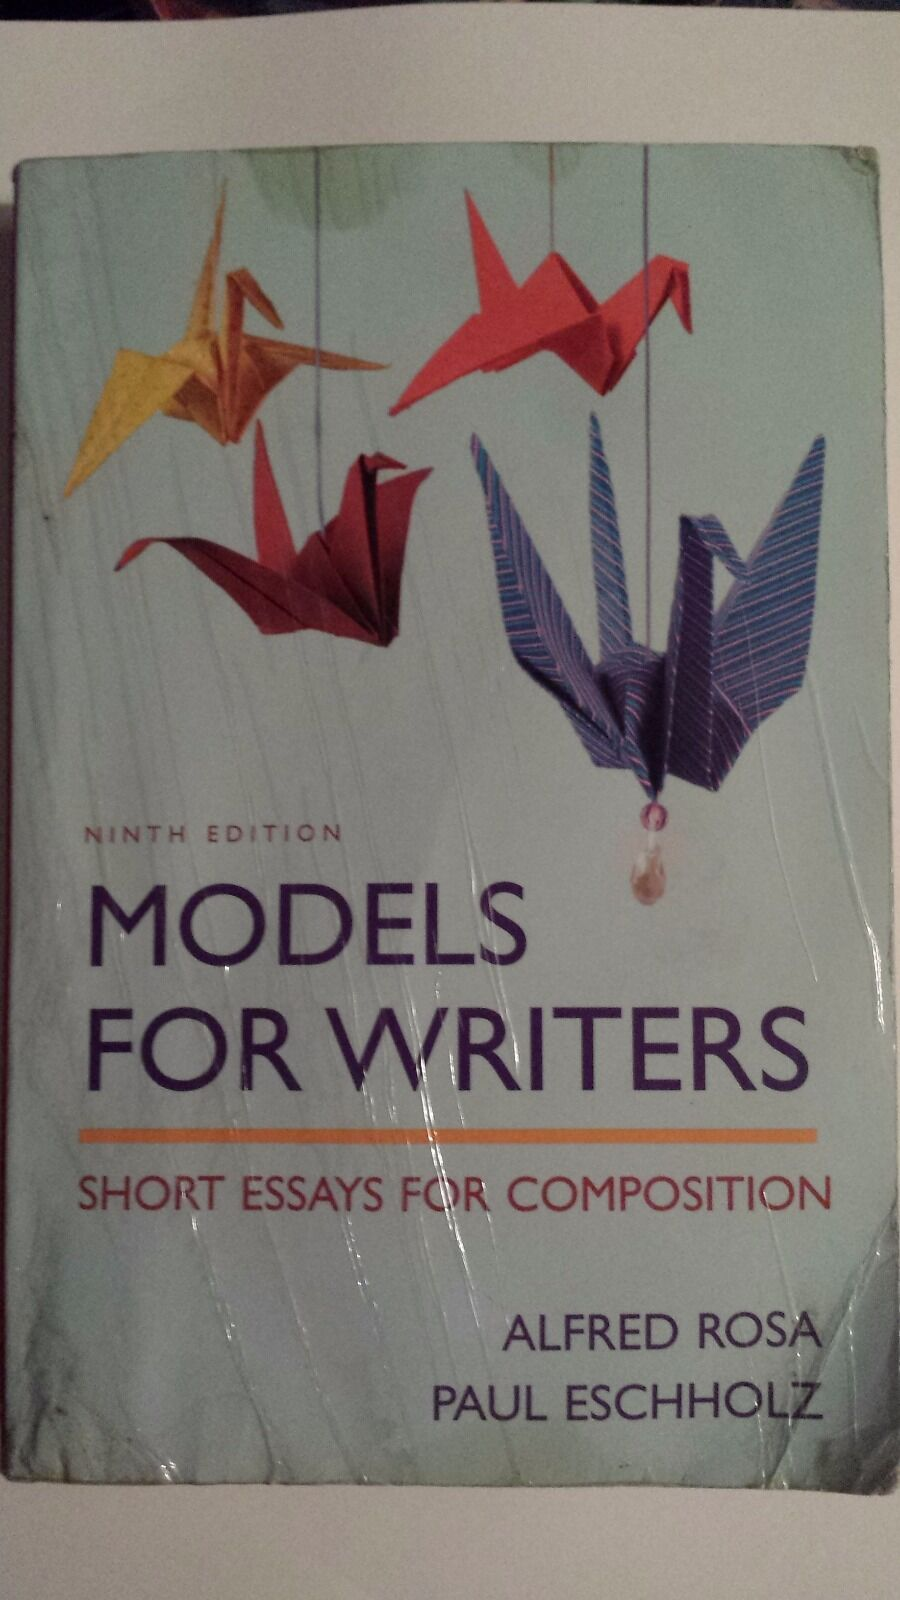 016 S L1600 Models For Writers Short Essays Composition Essay Singular 12th Edition Pdf 13th Full